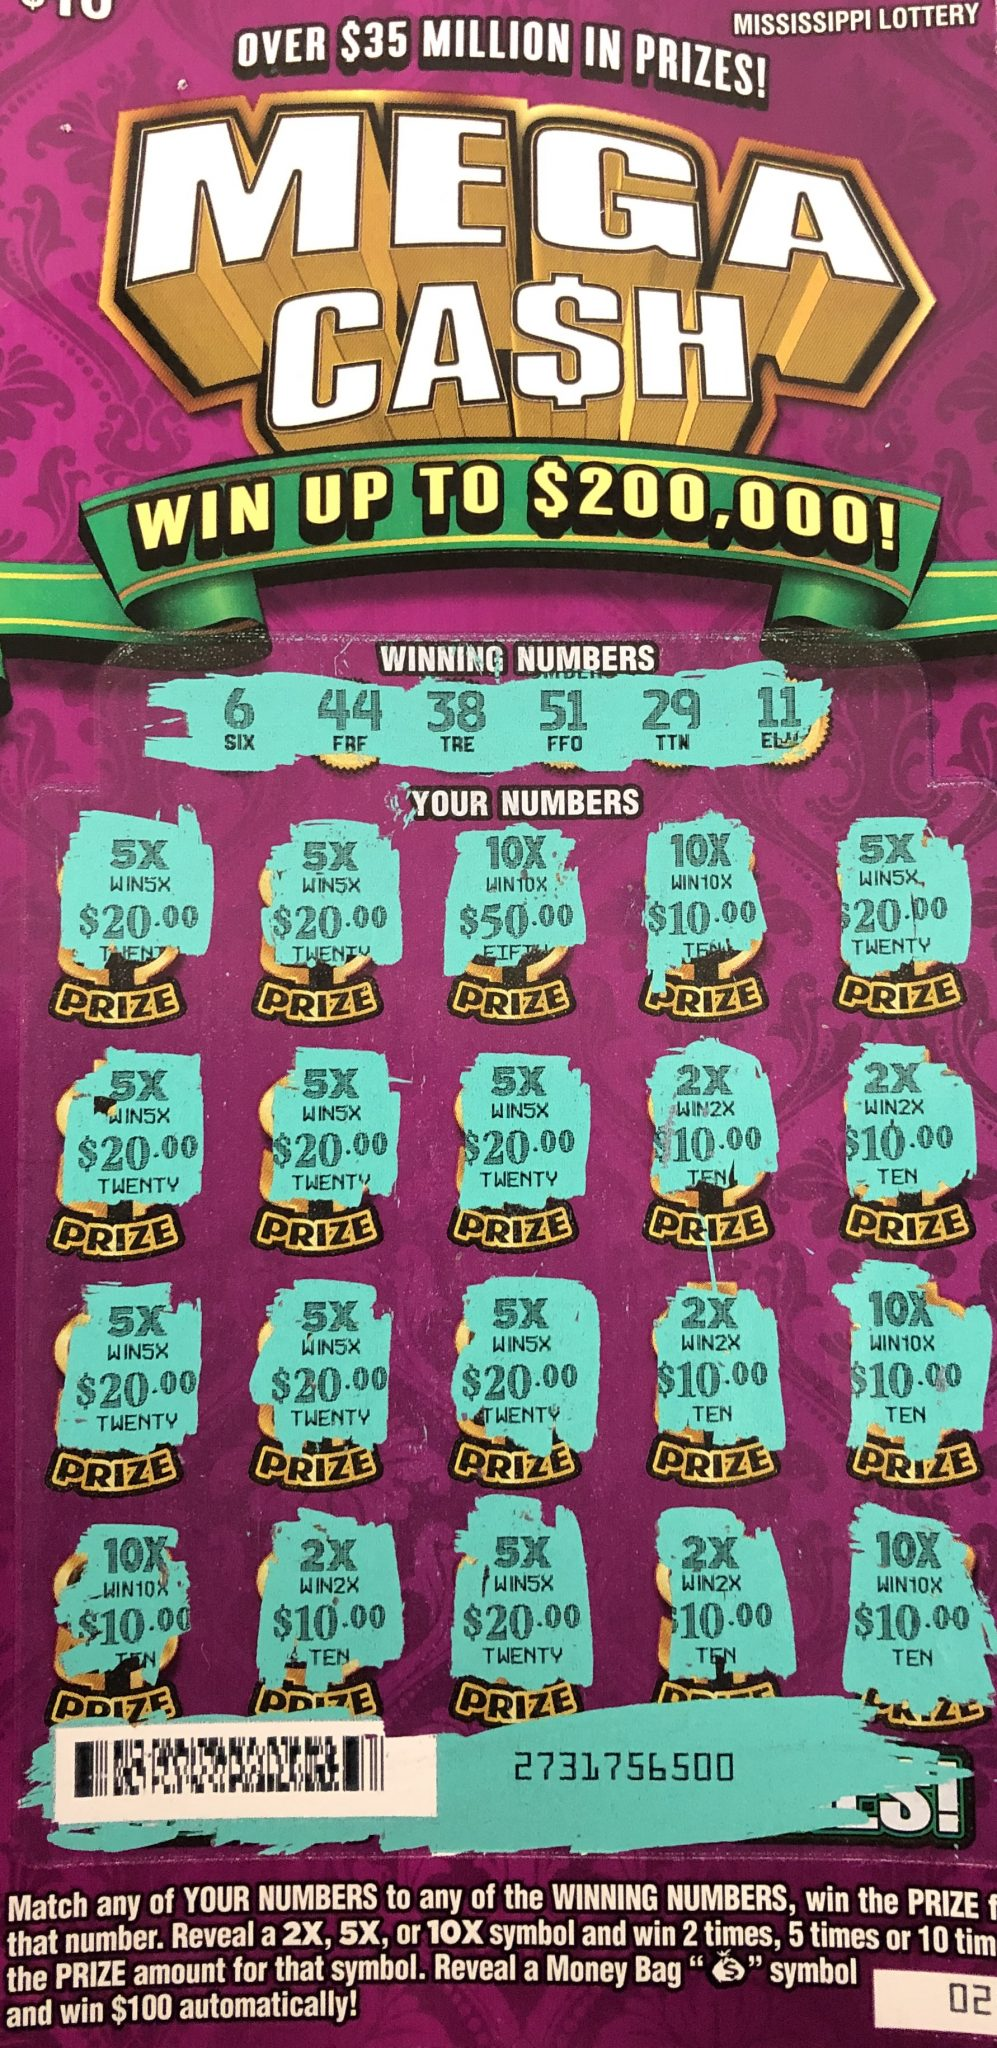 Booneville Man Wins $2K! - Mississippi Lottery